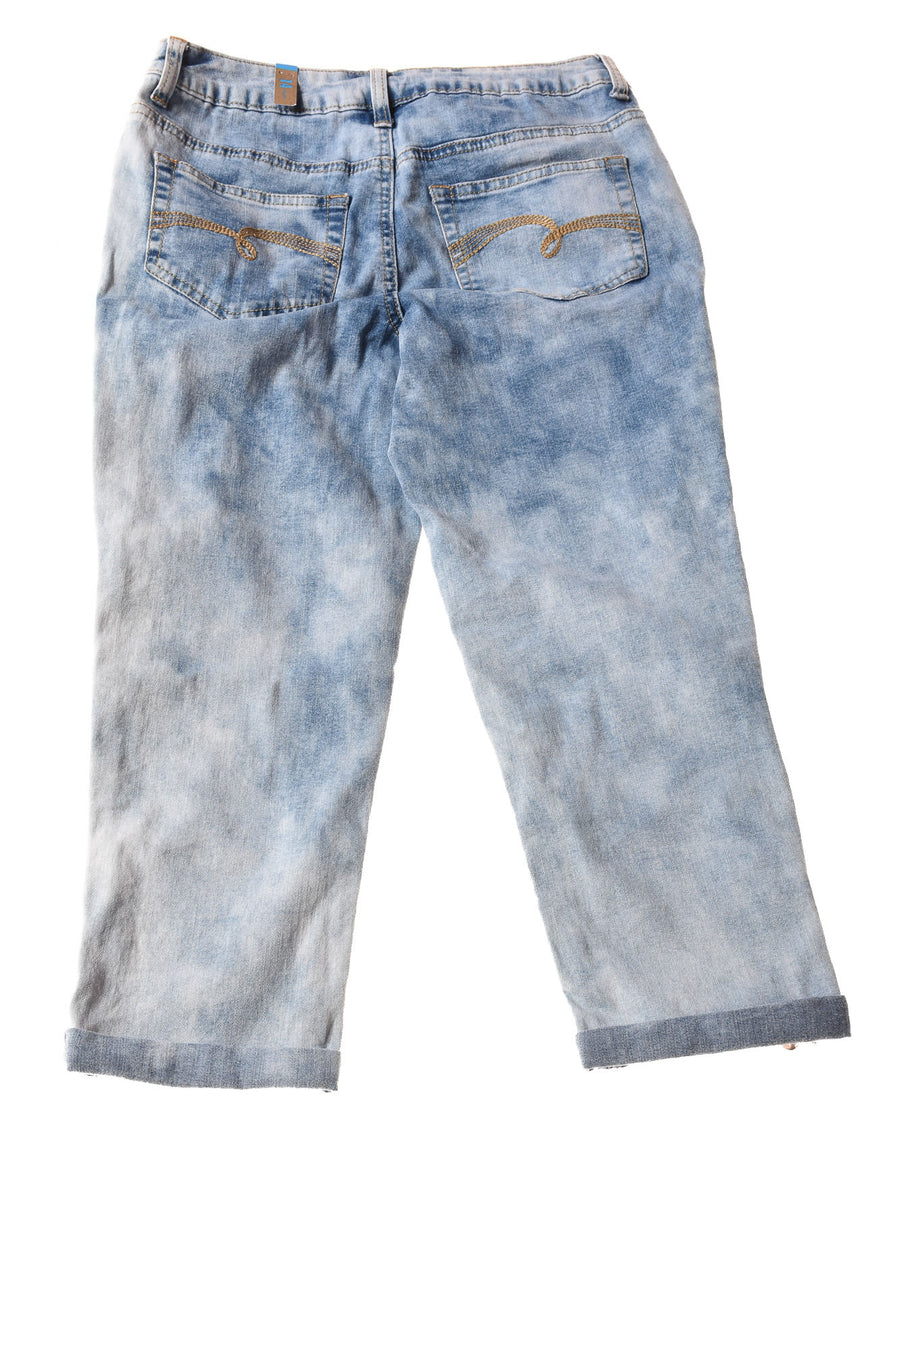 NEW Justice Girl's Jeans 14 Regular Blue / Print